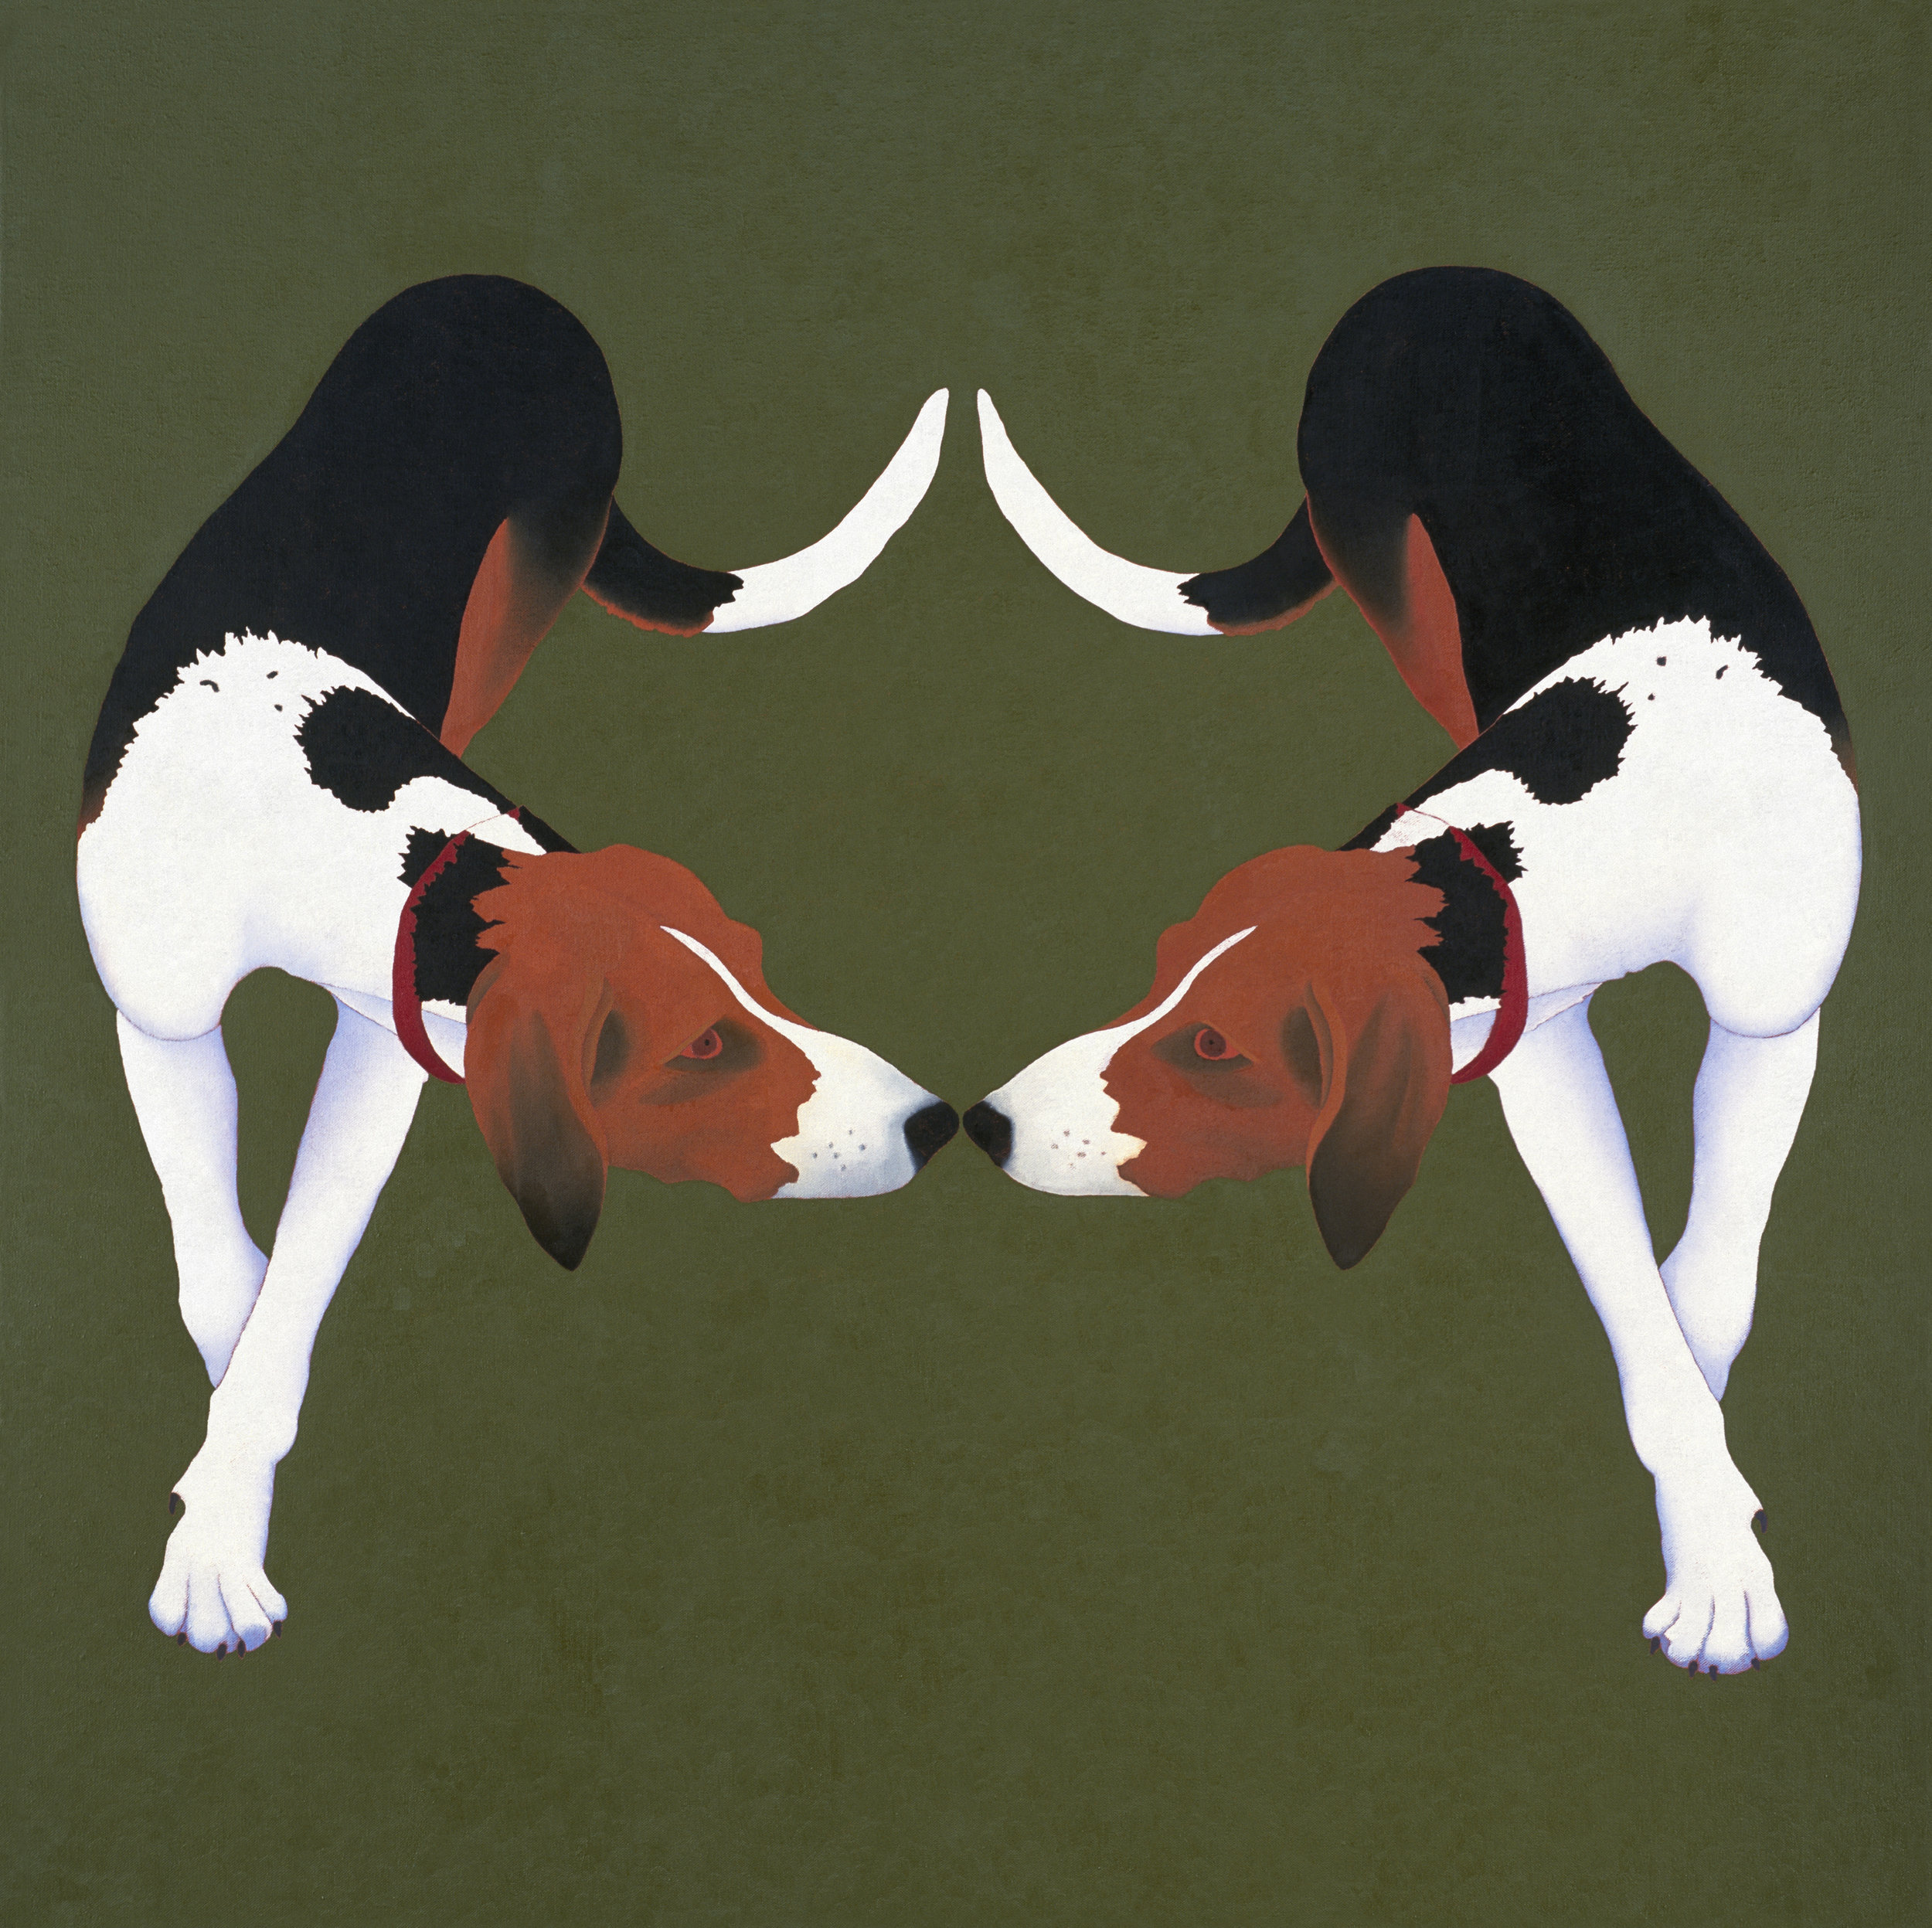 Double Happiness - The Year of the Dog